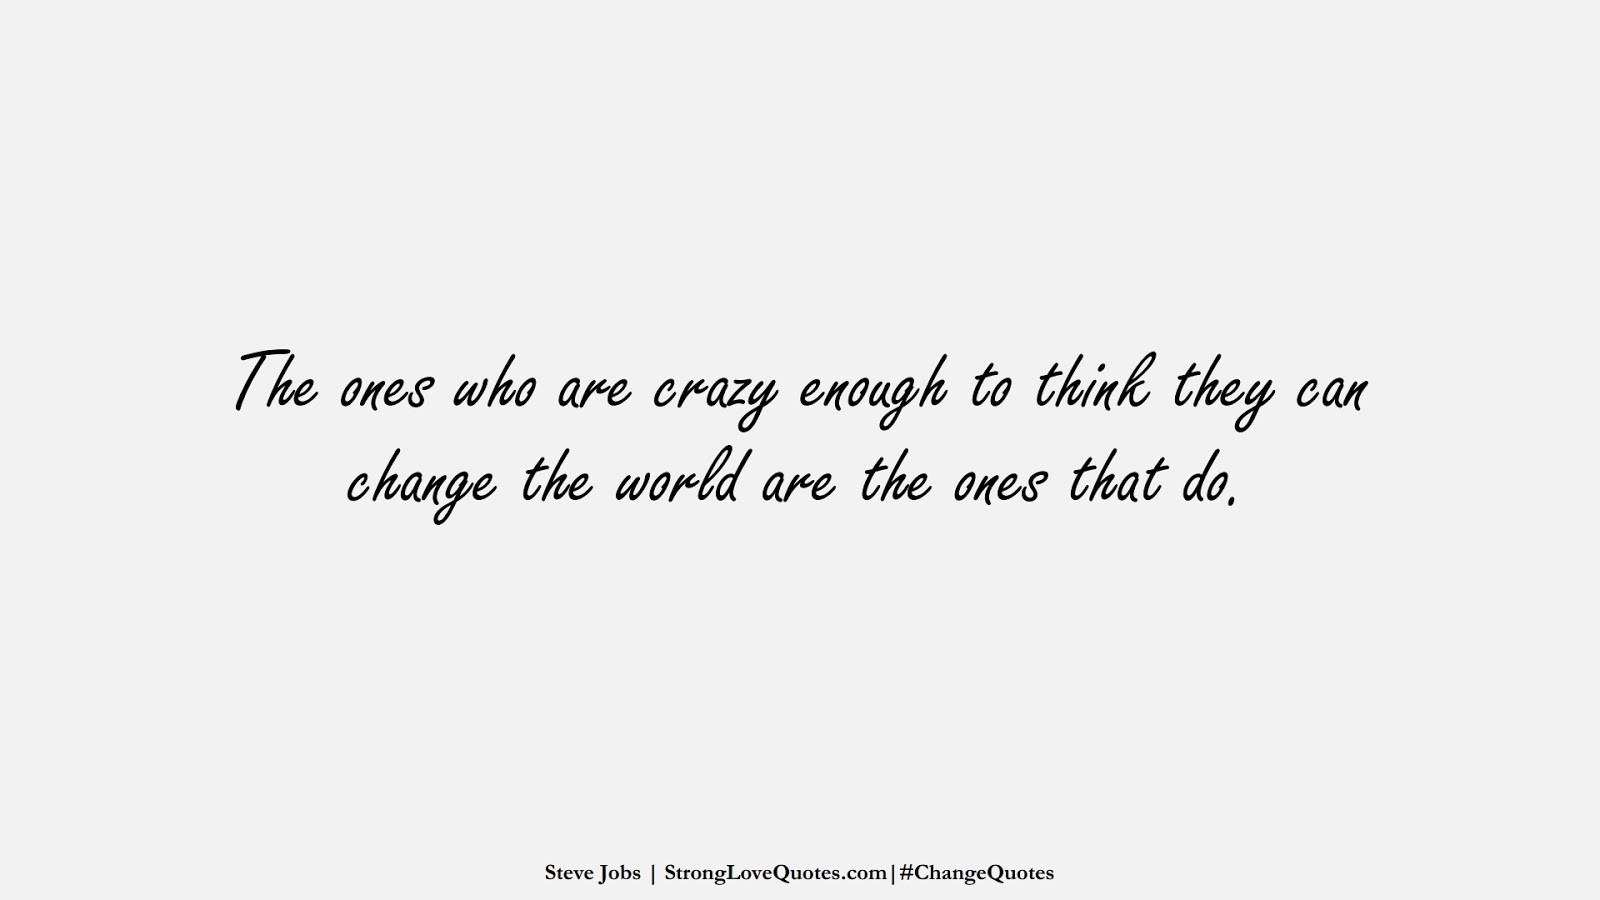 The ones who are crazy enough to think they can change the world are the ones that do. (Steve Jobs);  #ChangeQuotes